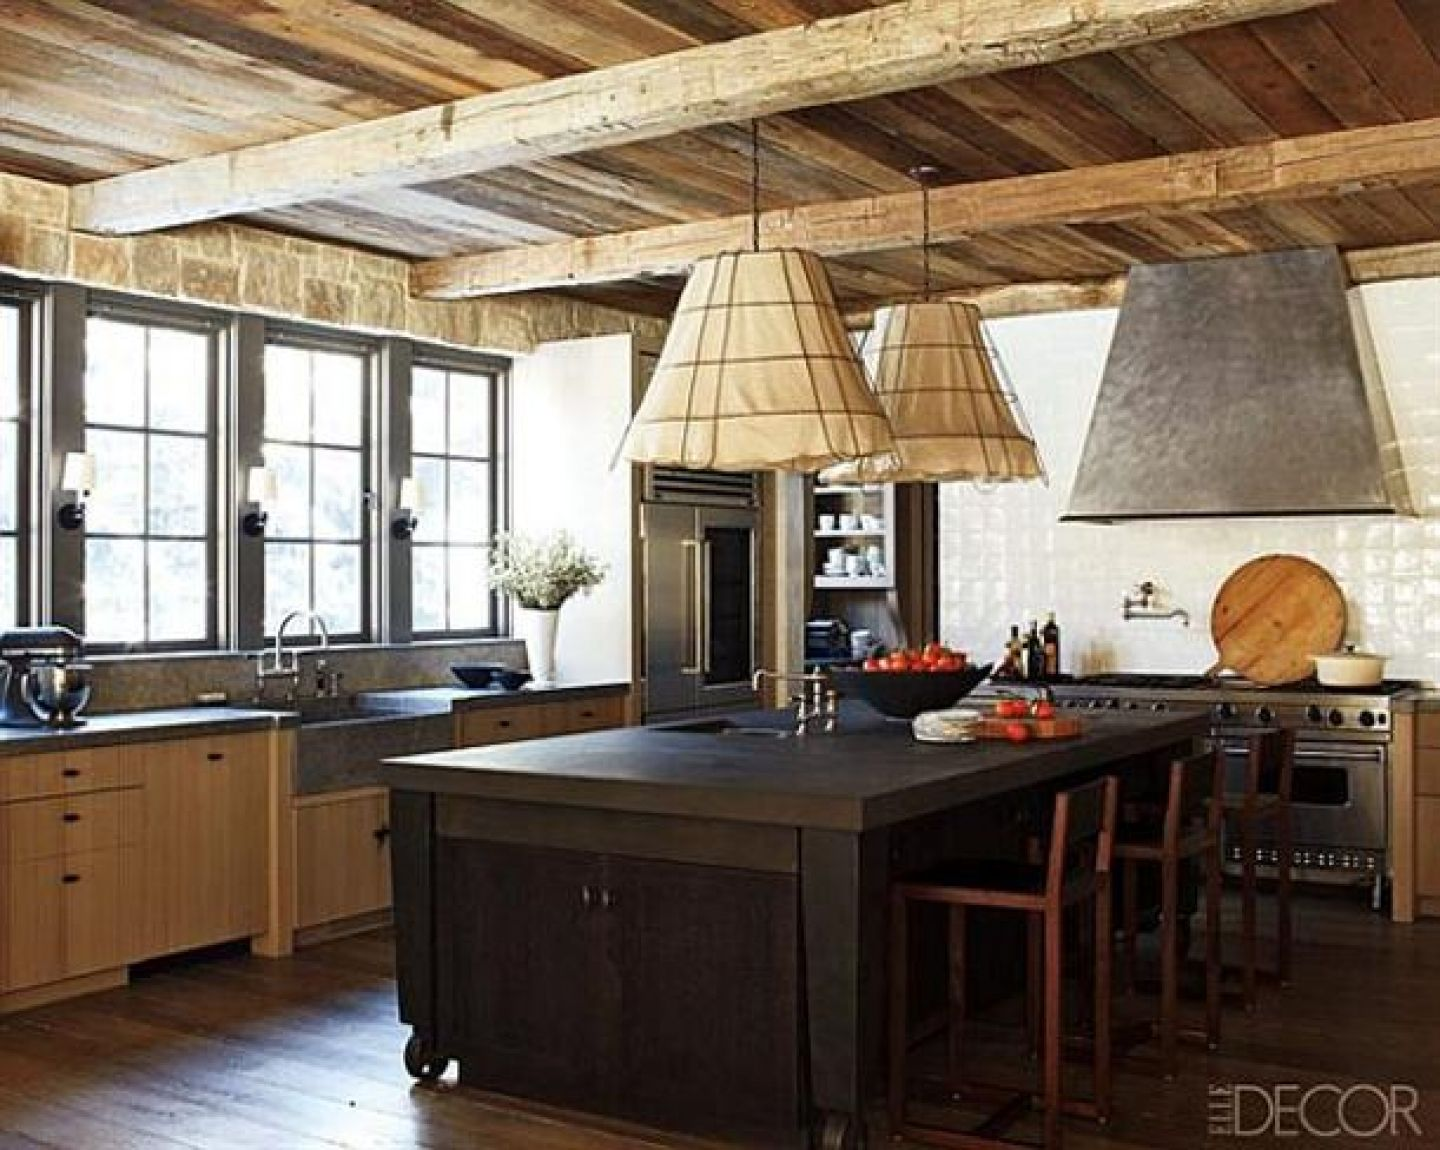 Google Image Result for http://www.timticks.com/wp-content/uploads/sharp-mountain-house-and-luxurious-decoration-kitchen.jpg